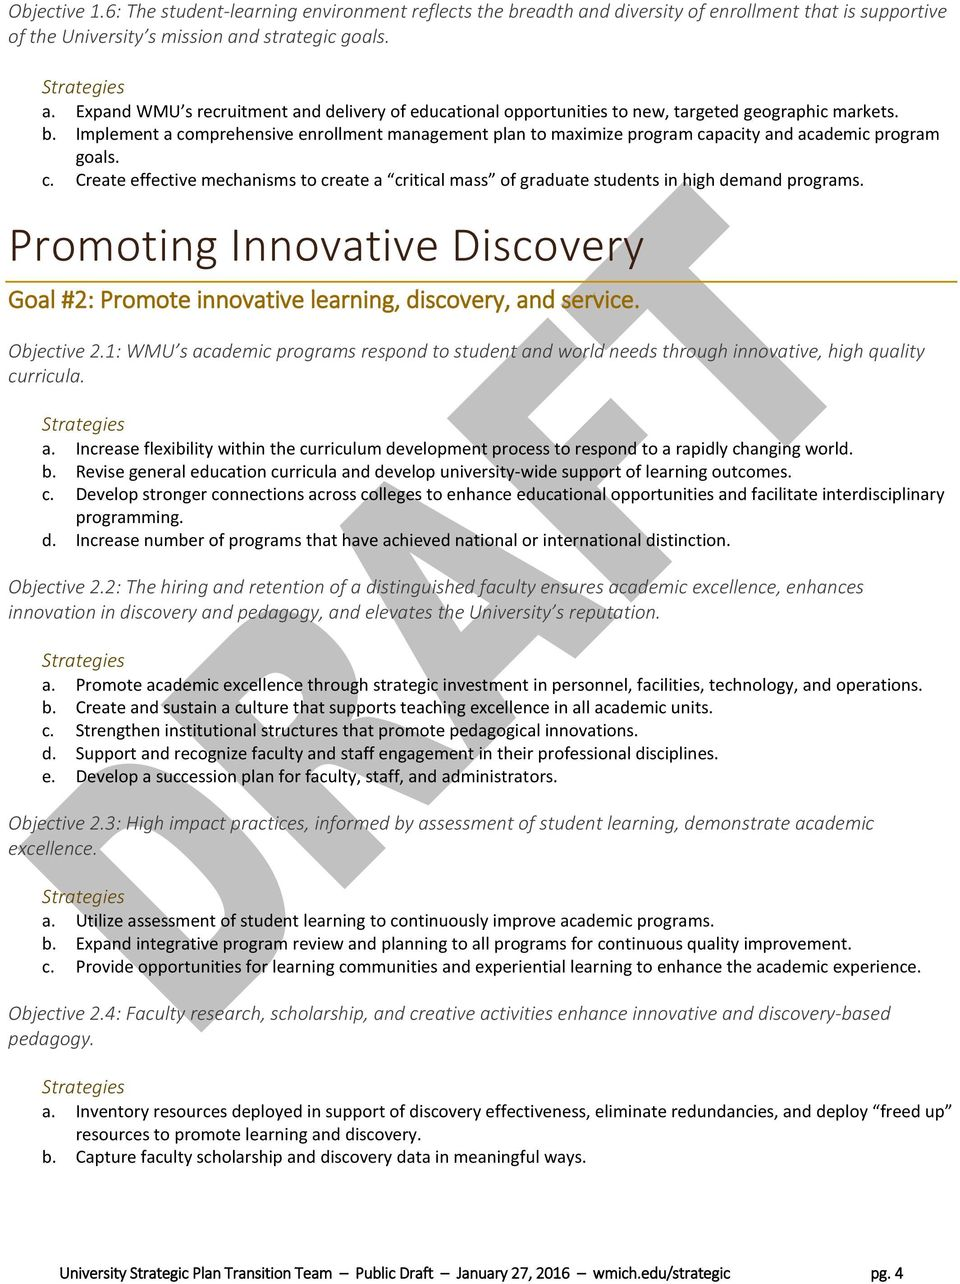 Promoting Innovative Discovery Goal #2: Promote innovative learning, discovery, and service. Objective 2.